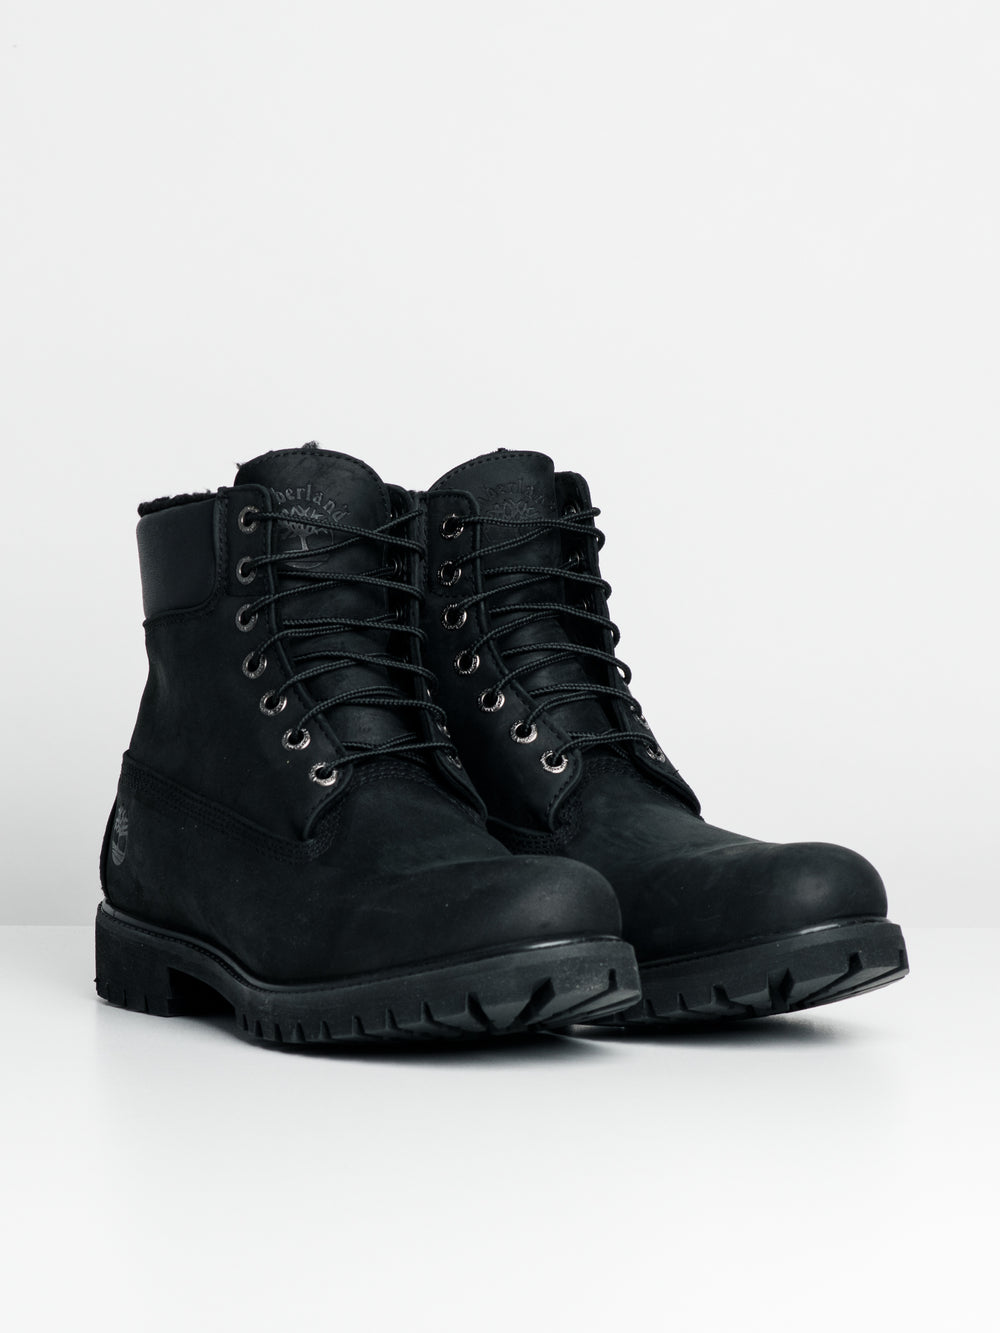 MENS PREM 6' WARM LINED BOOT - BLK